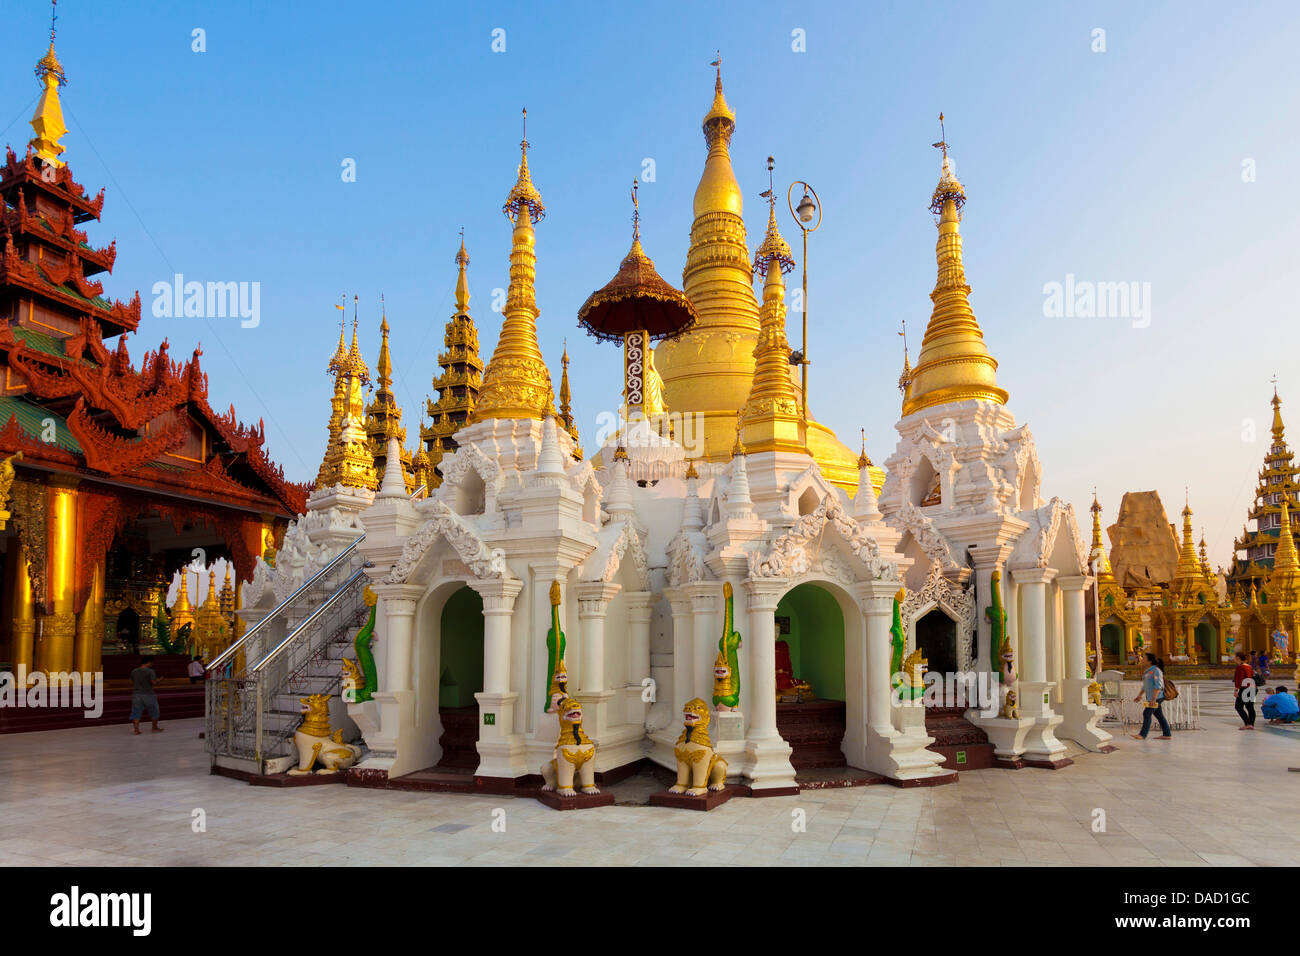 Temples and shrines at Shwedagon Paya (Pagoda), Yangon (Rangoon), Myanmar (Burma), Asia - Stock Image